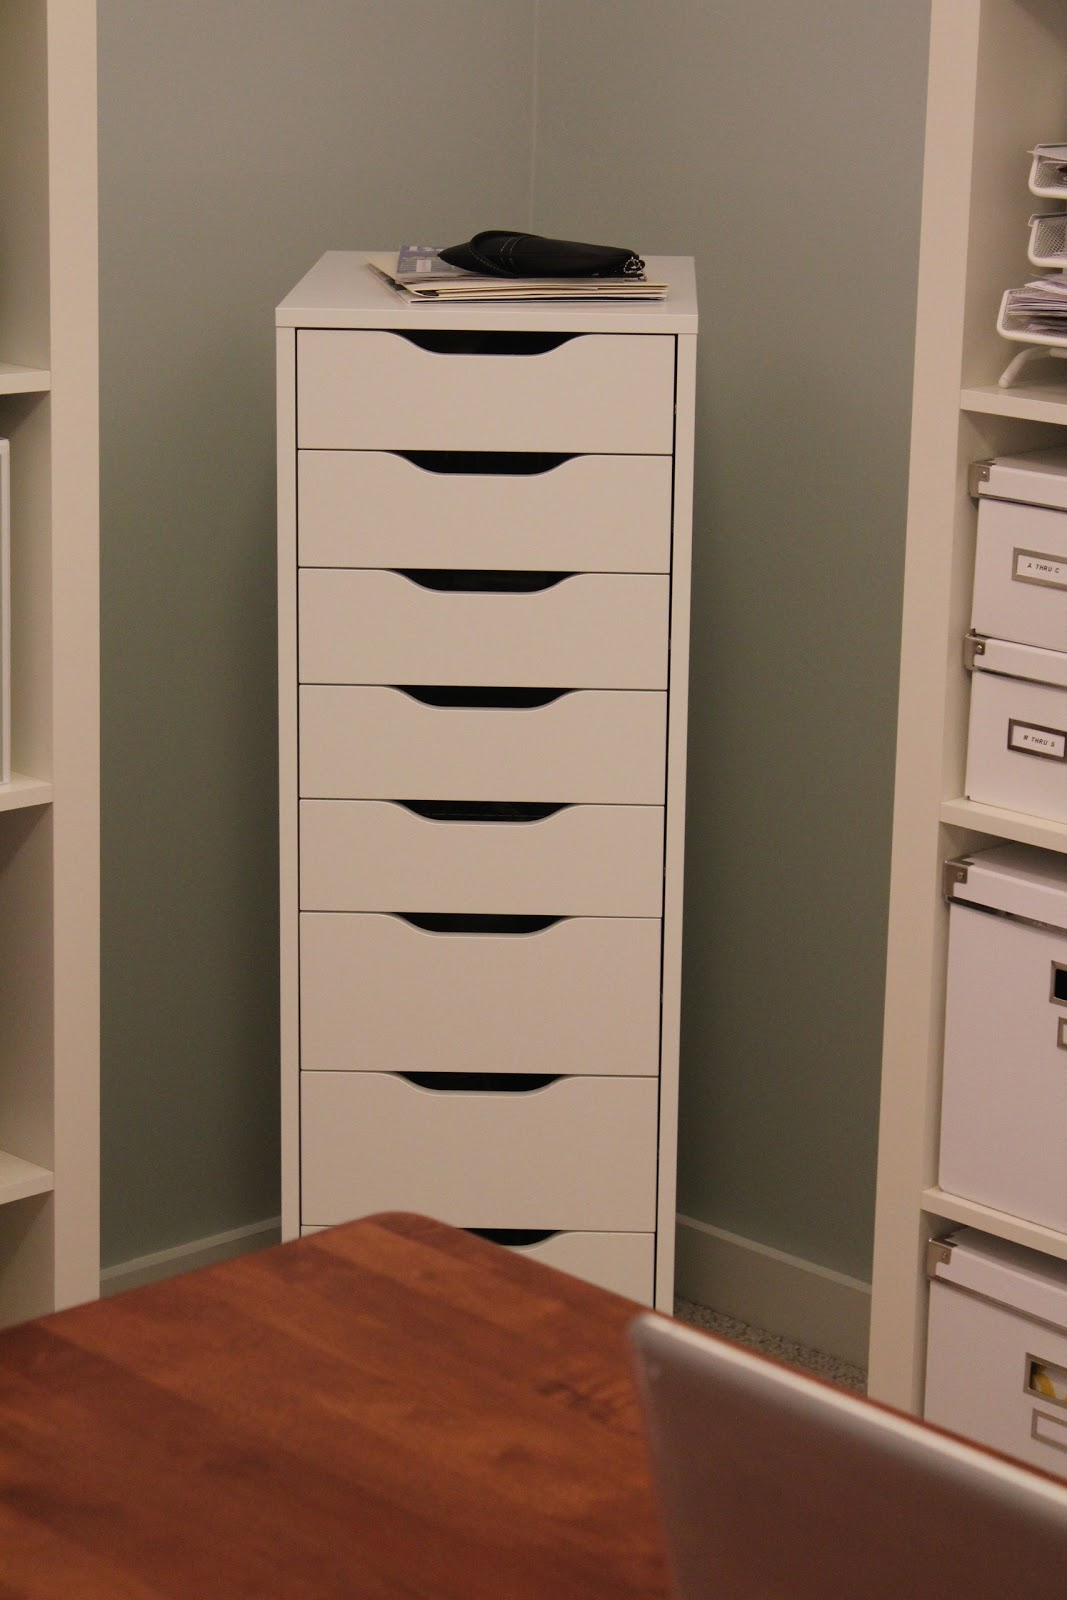 Pine Tree Home: Office: IKEA Alex Storage Drawers